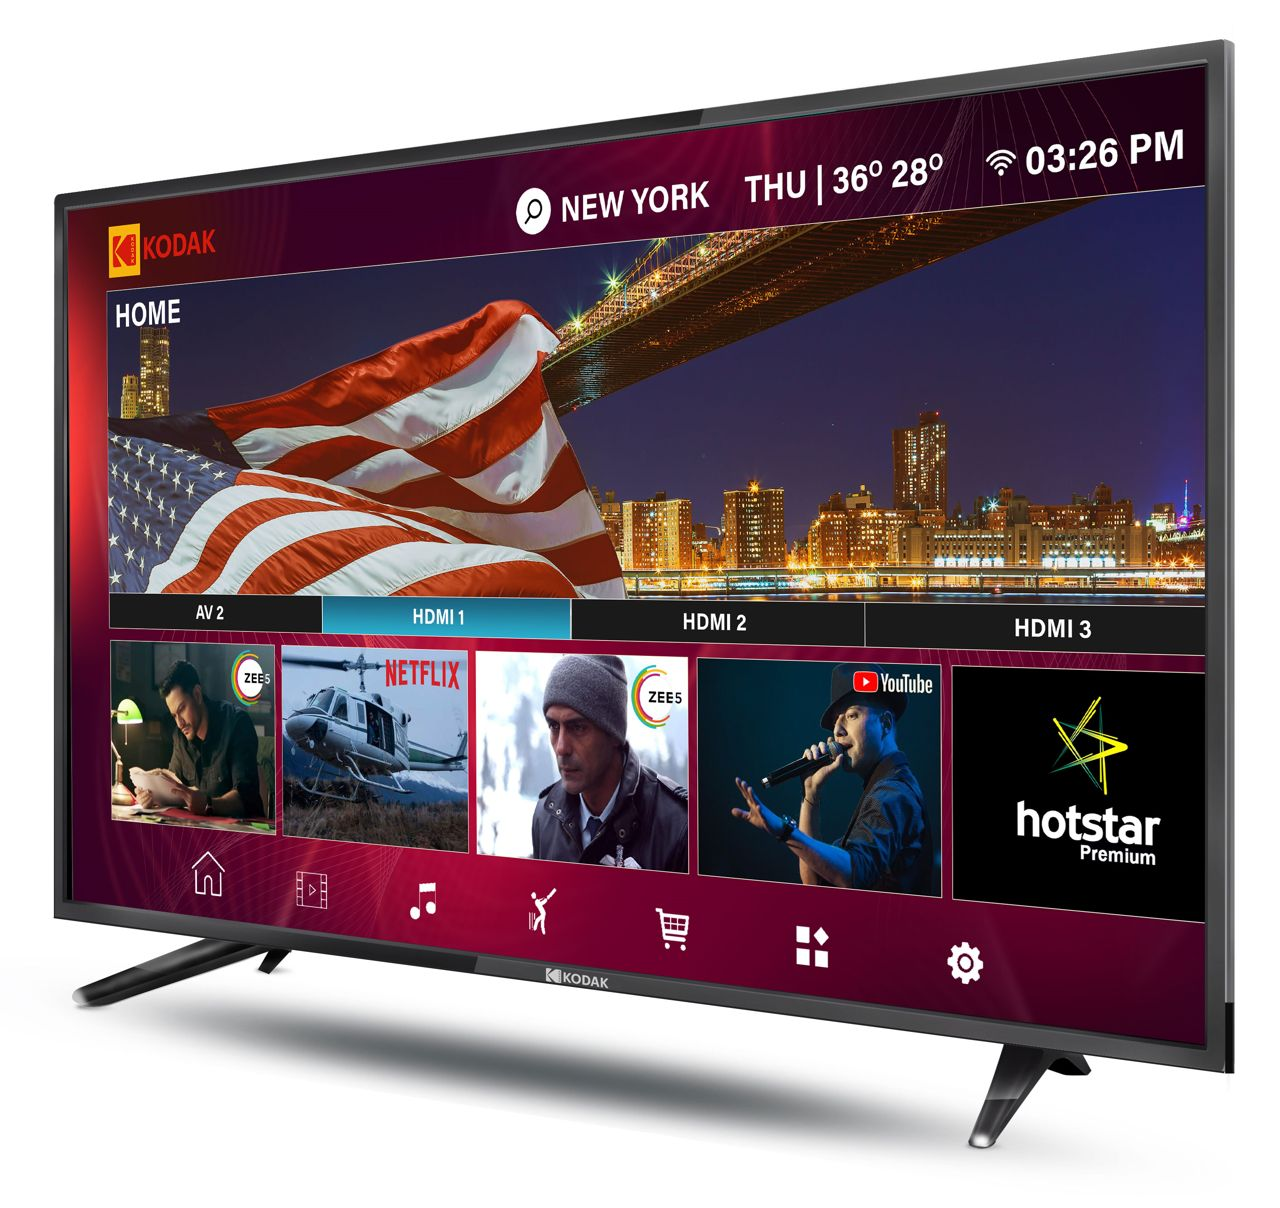 Kodak XPRO Series Smart LED TVs Launched In India